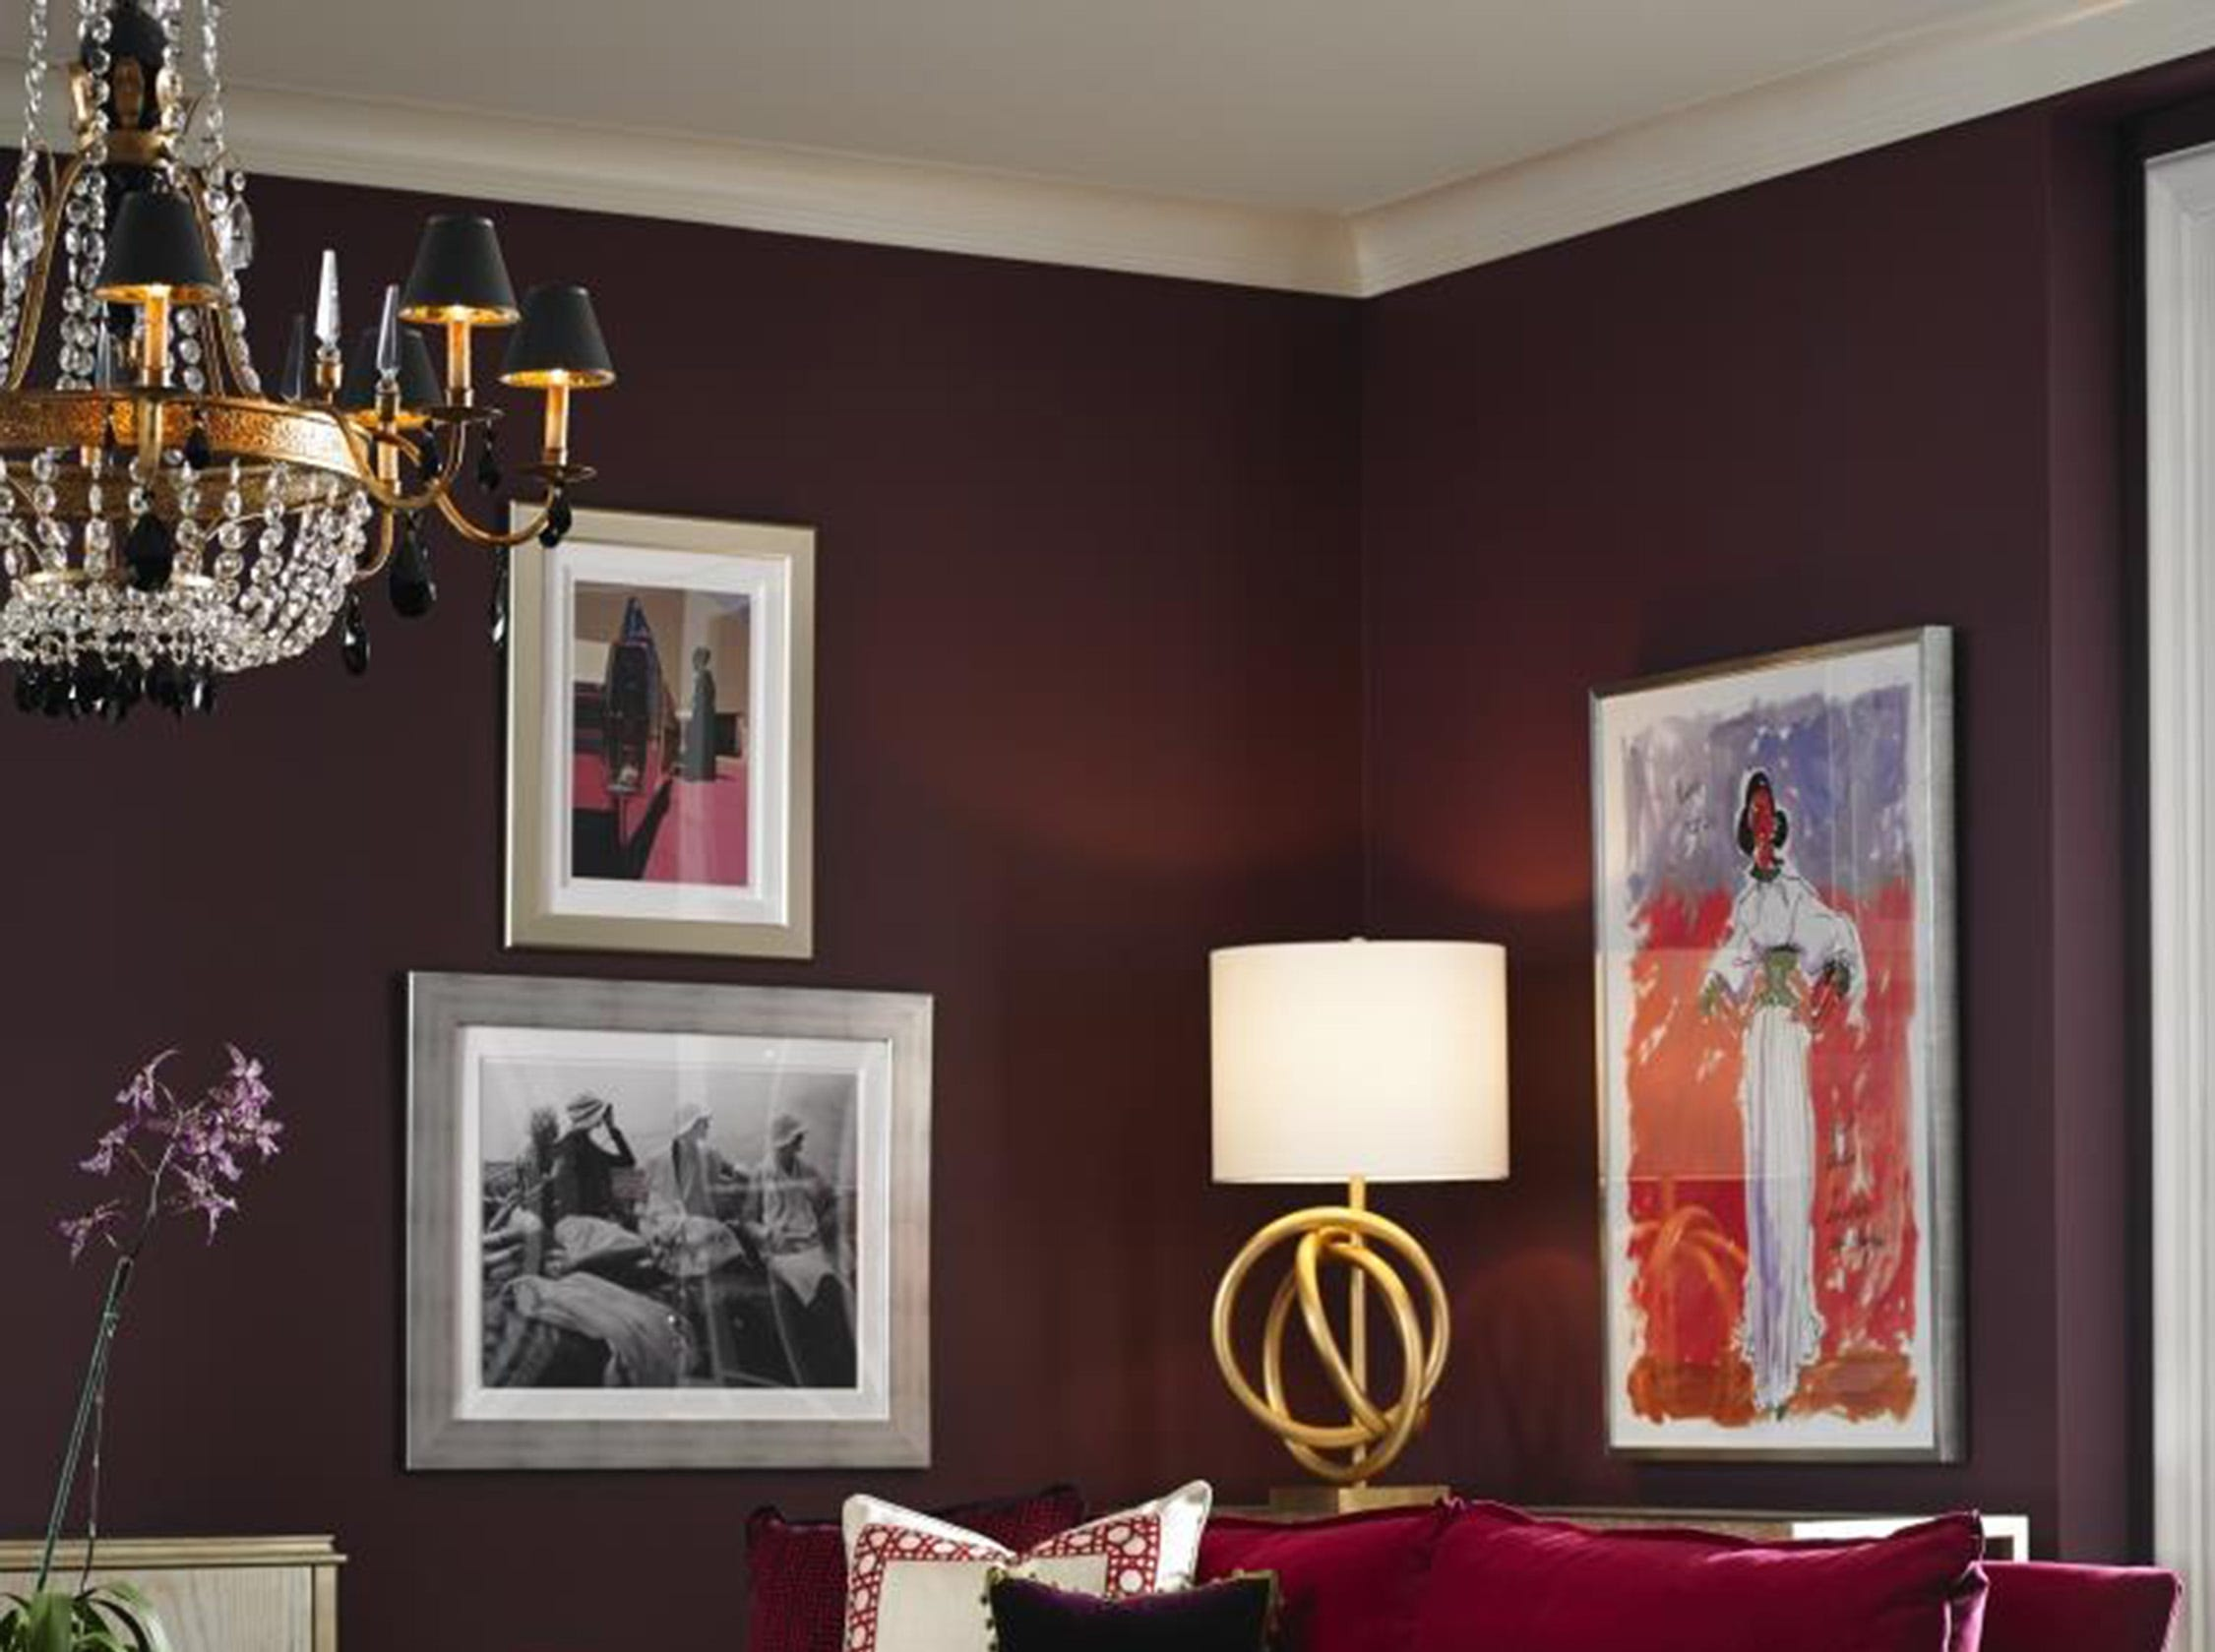 """Velvet is 'it': When it comes to bedding and furnishings, nothing is more touchable than velvet, says design expert Mary Carol Garrity. """"All it takes is a touch of velvet to make a space feel luxurious,"""" Garrity has written."""